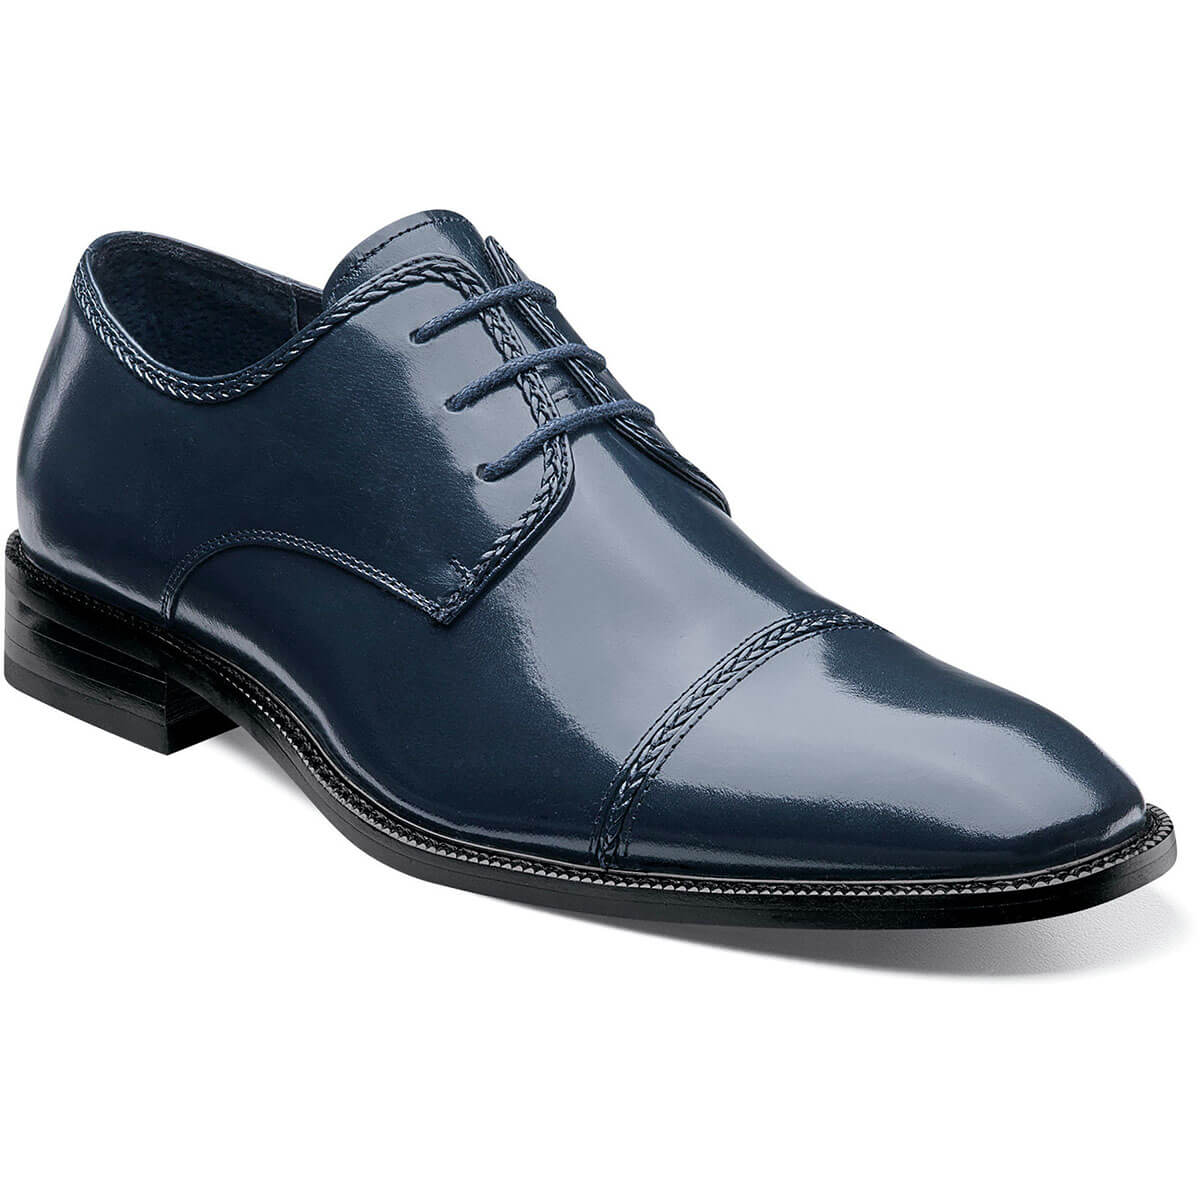 Stacy Adams Brayden Cap Toe Oxford - Navy Shoes - Dapperfam.com